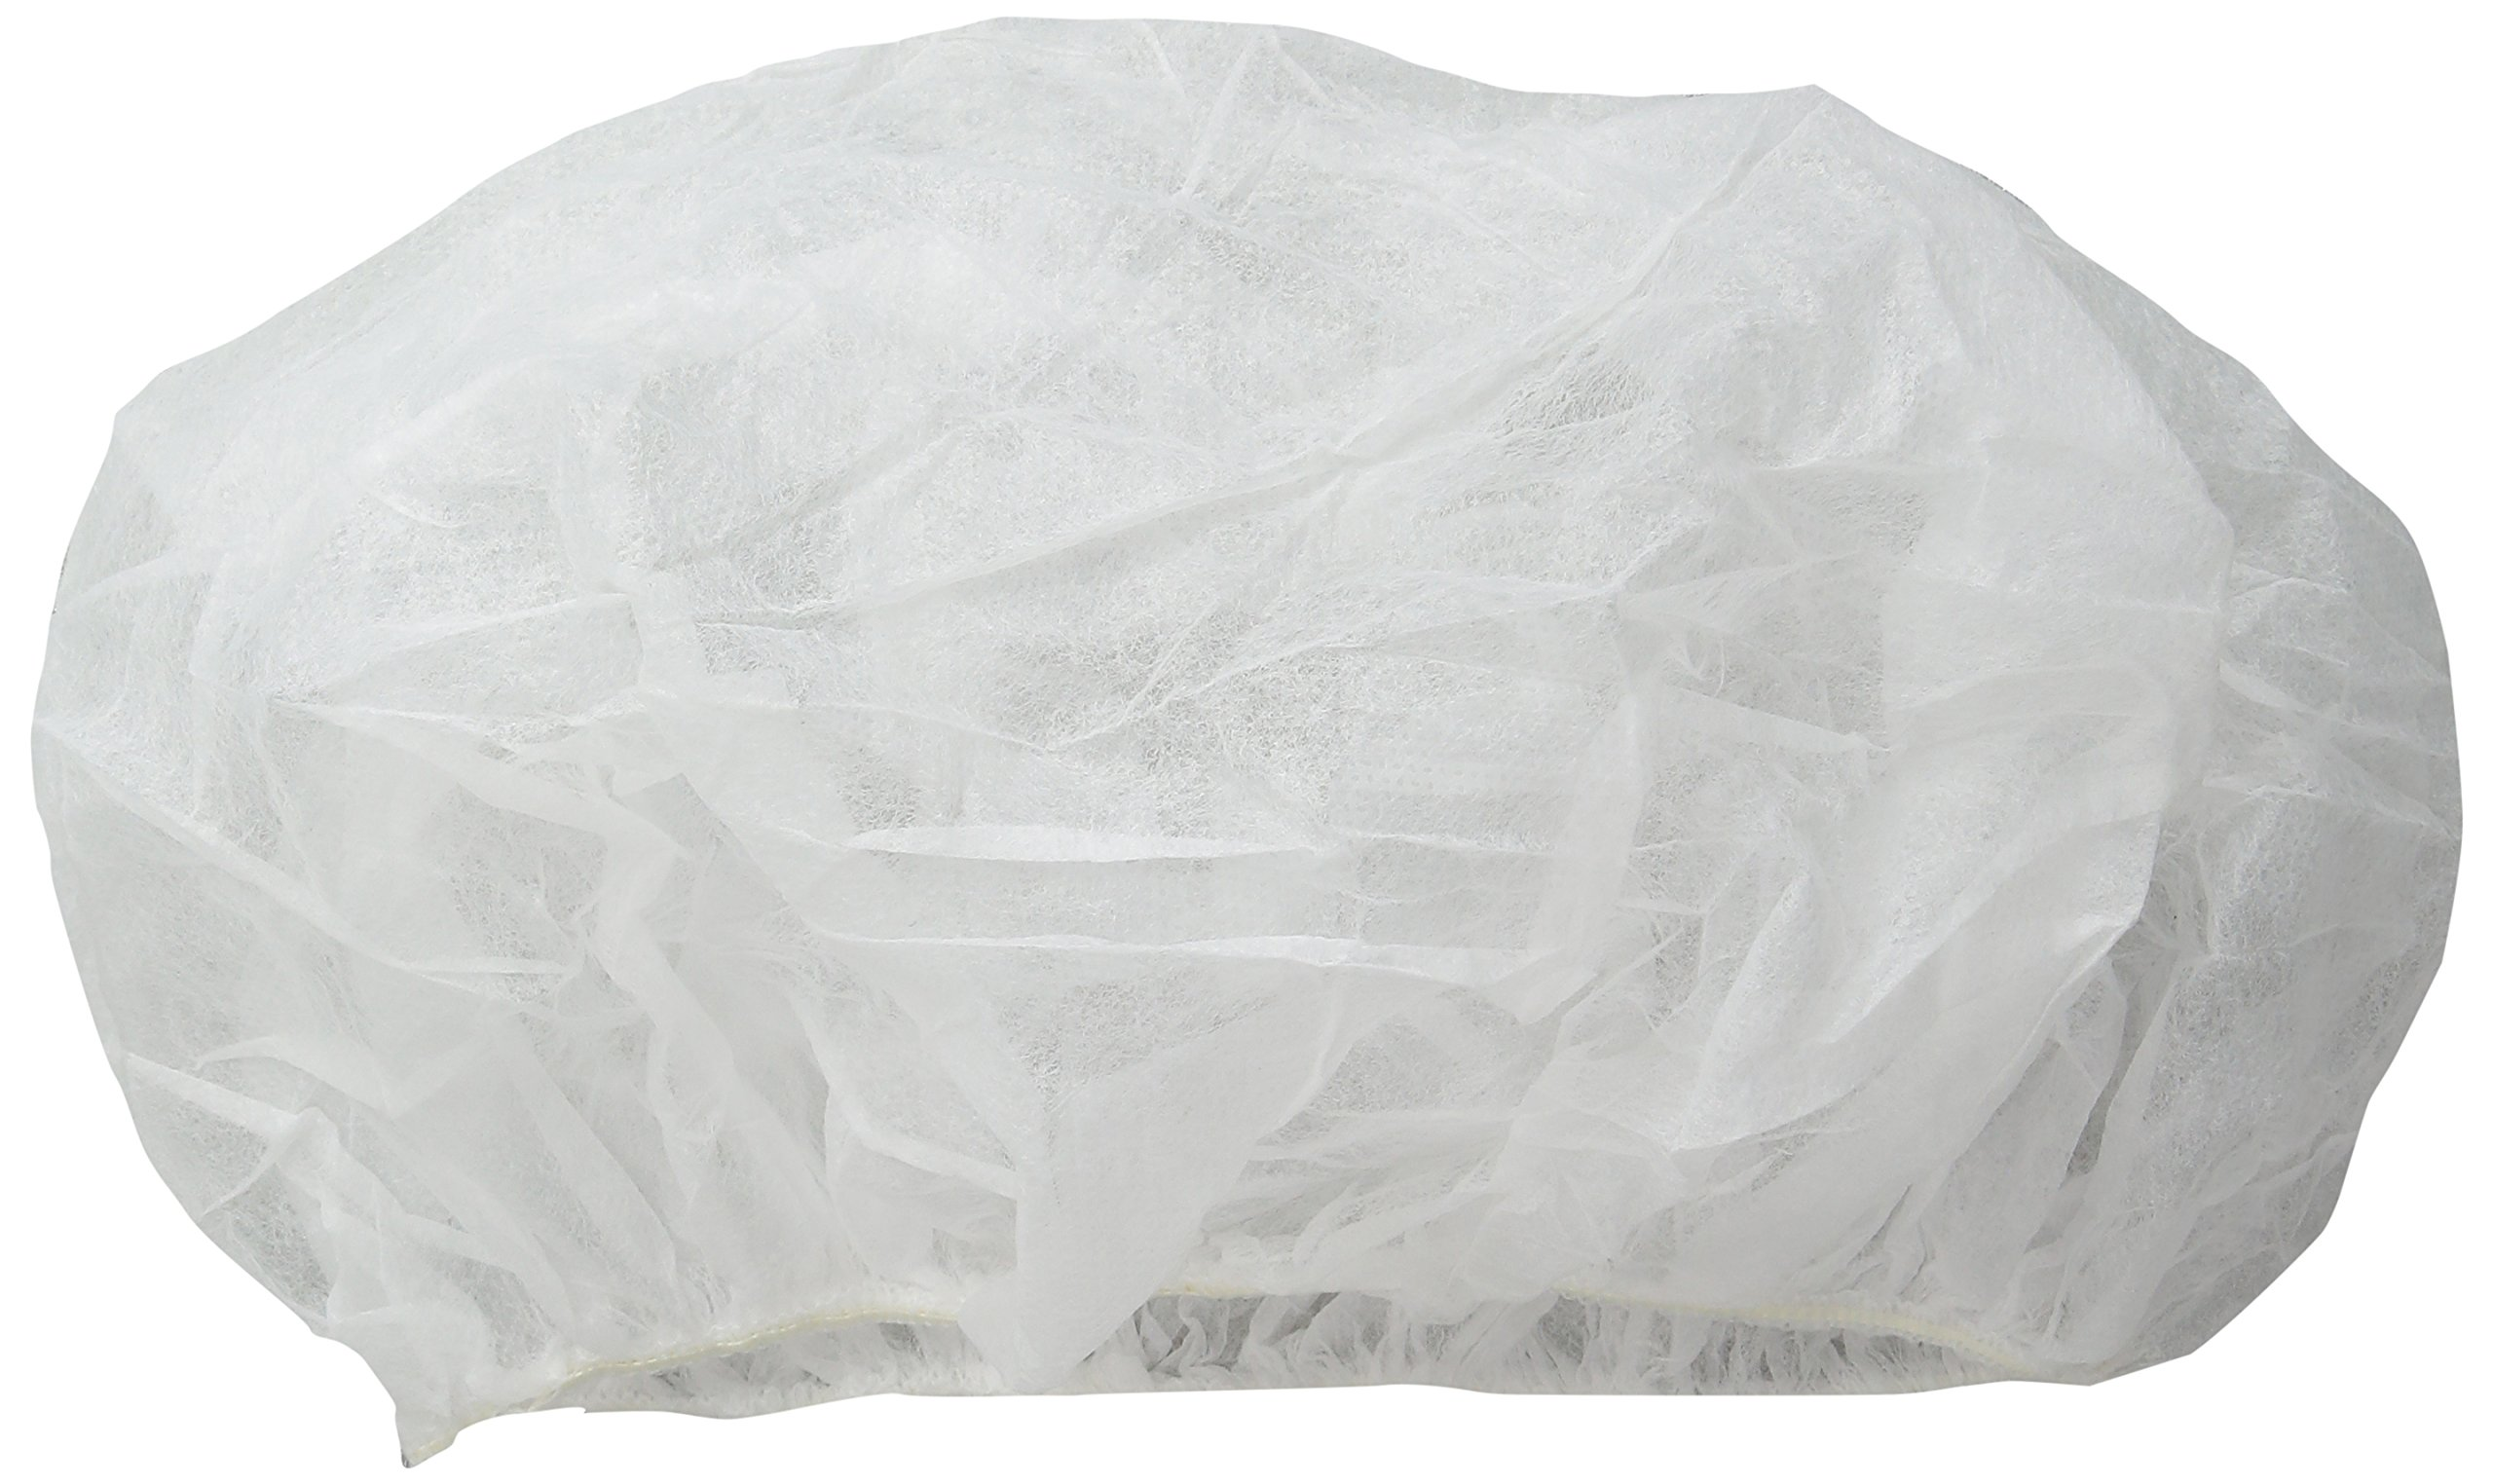 Dupont IC729SWH0002500B White Tyvek IsoClean Bouffant Cap, Universal (Pack of 250)